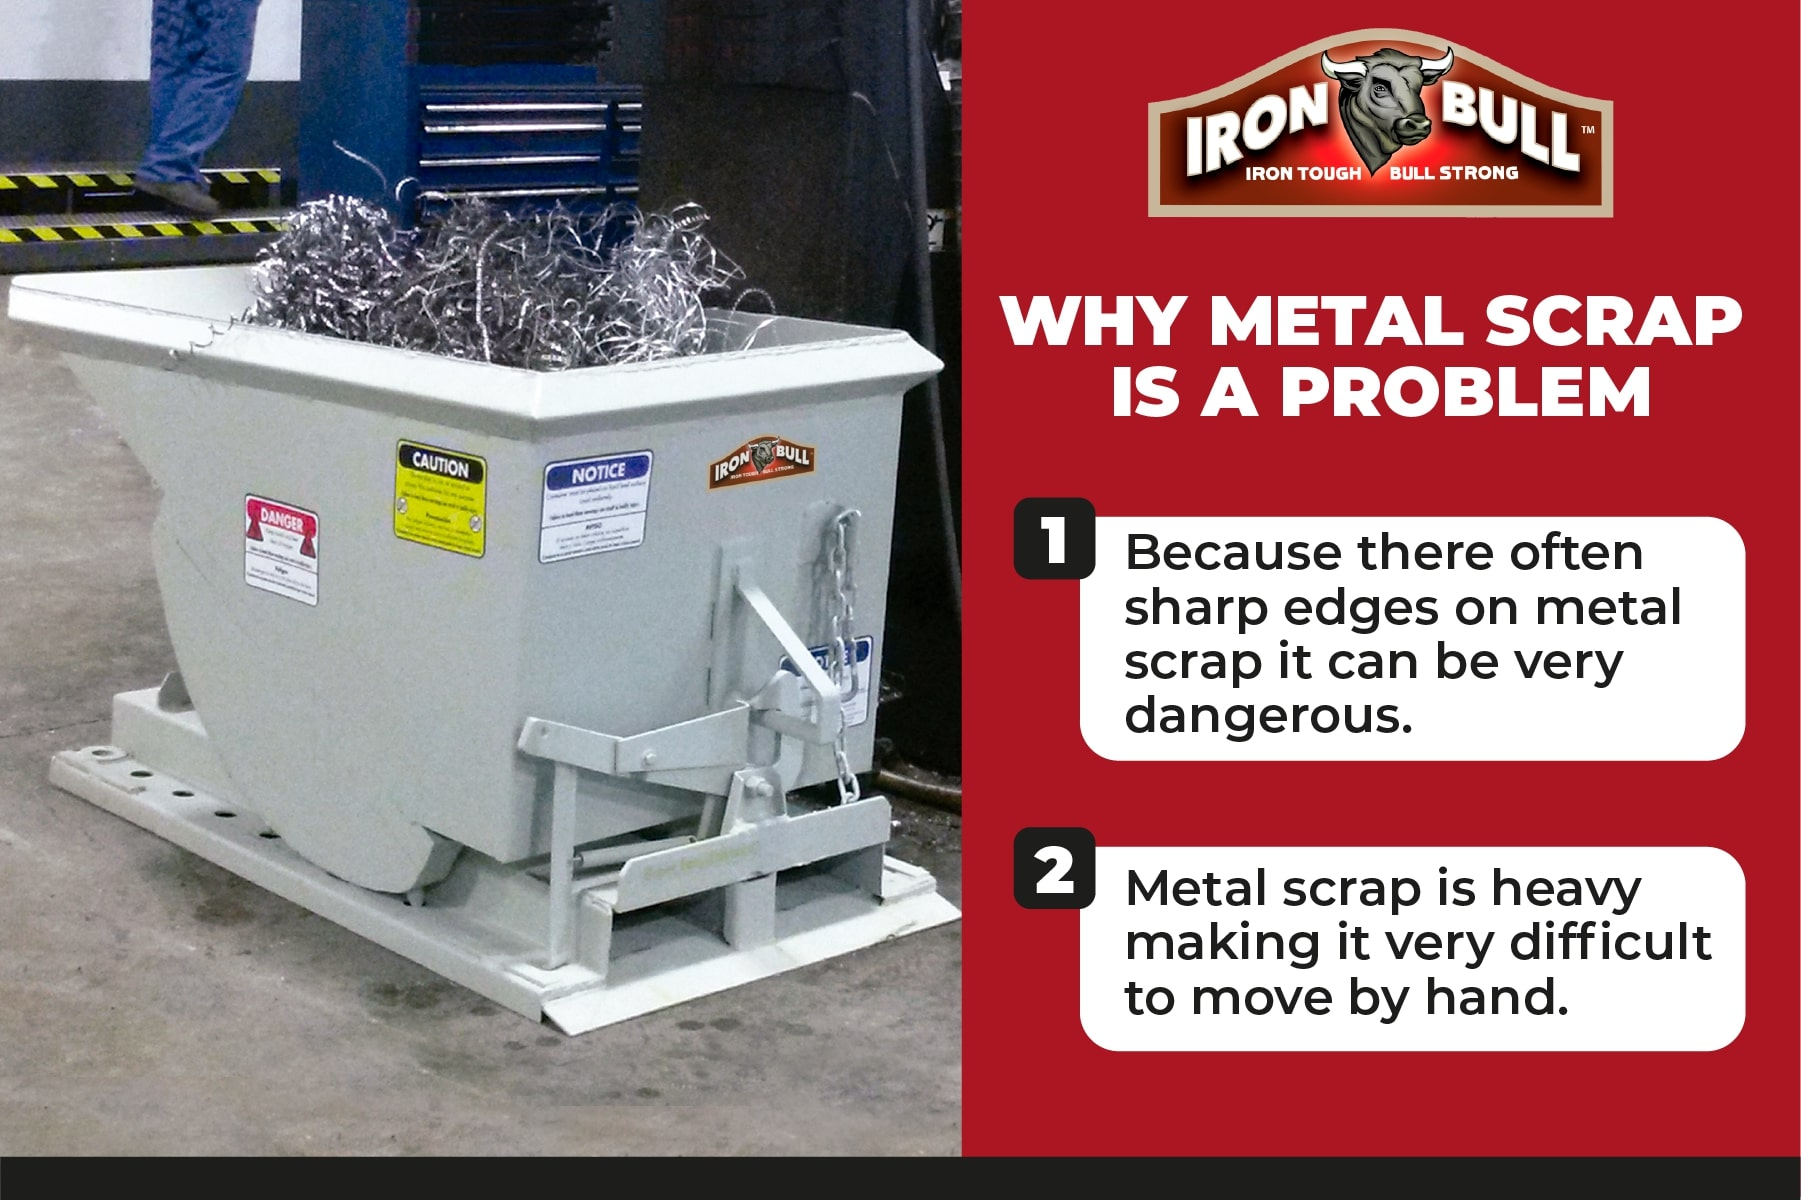 Why metal scrap is a problem